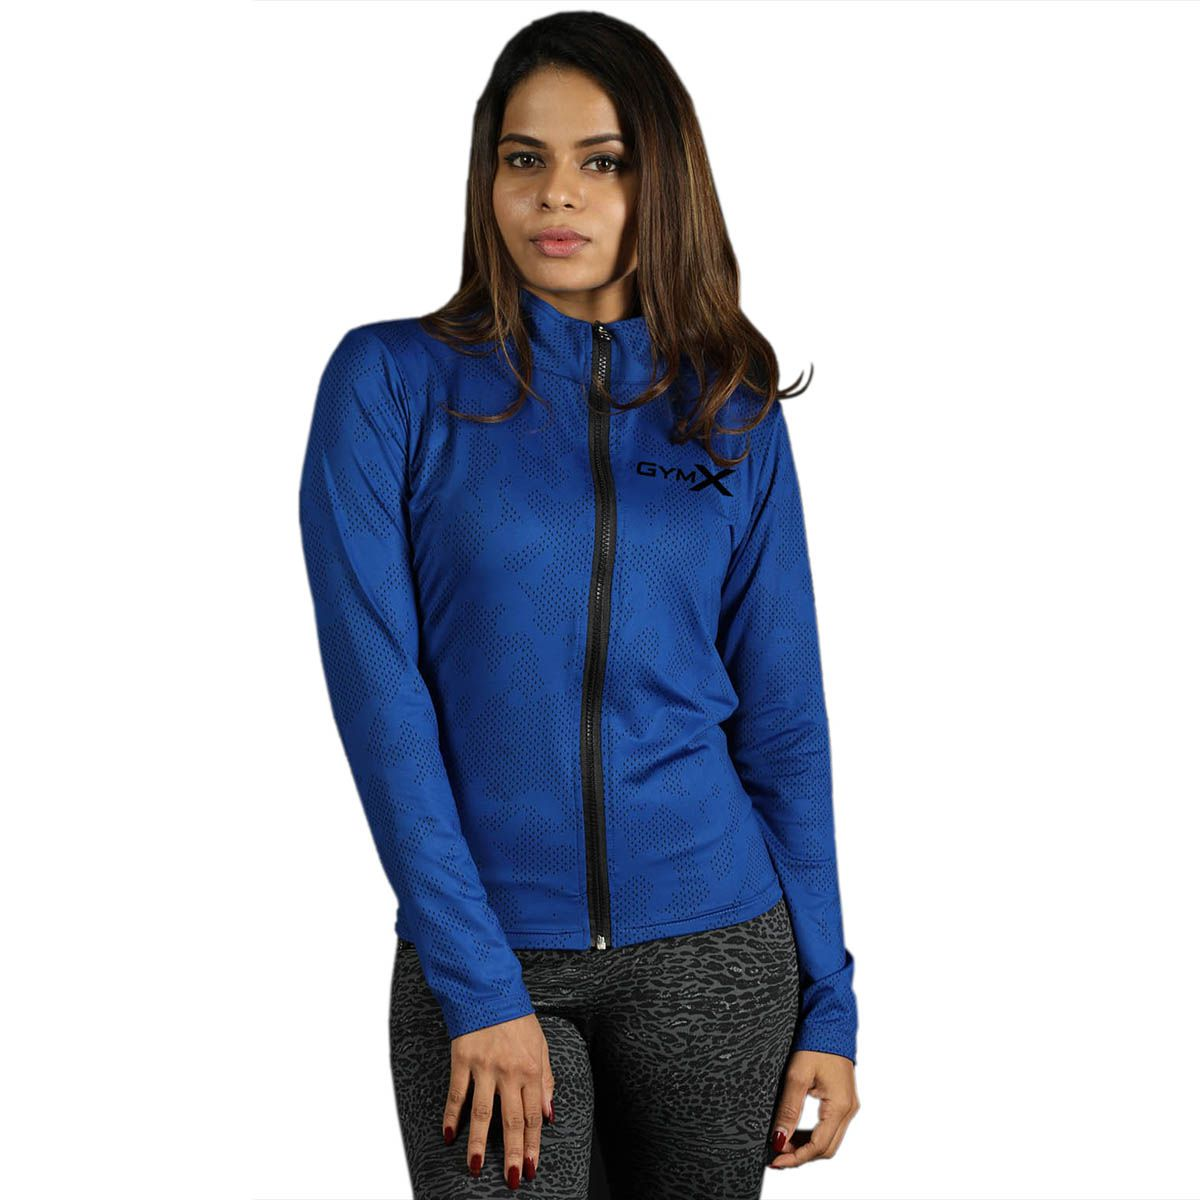 GymX Womens Royal Blue Full Zip Jacket- Athena Series